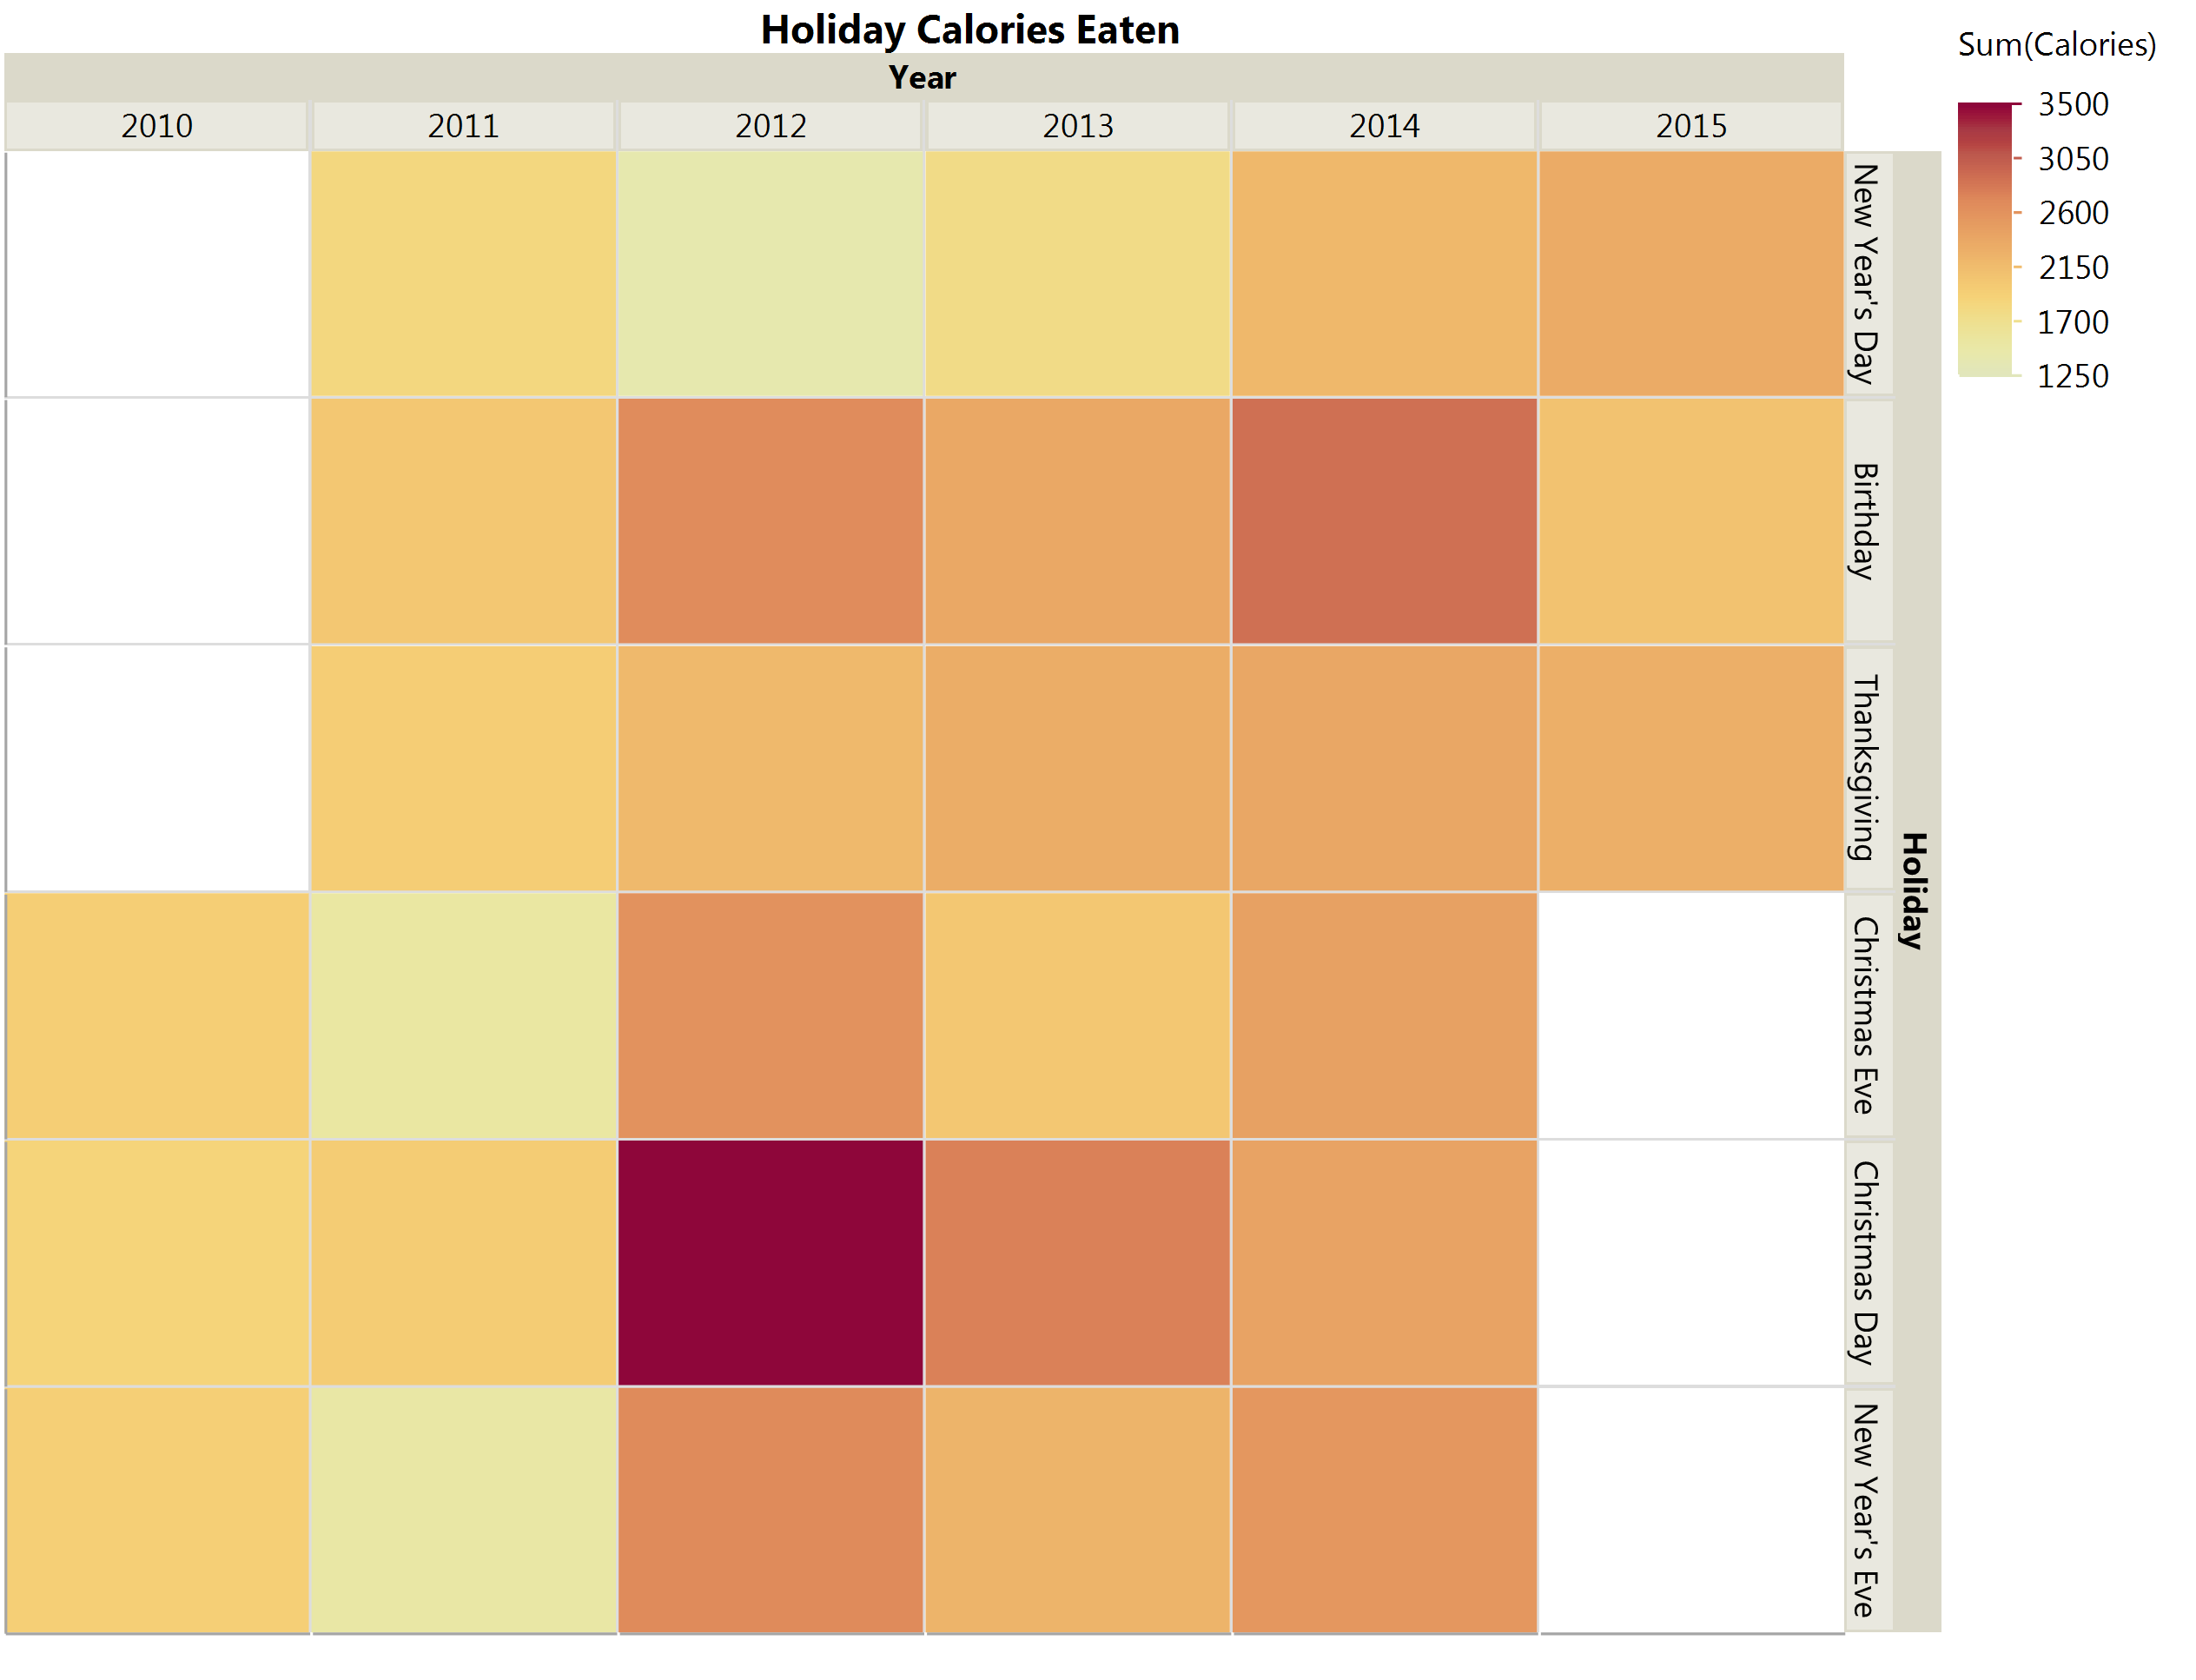 This Graph Builder heat map shows that the amount of calories I ate on holiday varied, ranging from a low of 1396 (light yellow) to a high of 3580 (dark red). Days with no food log data show as white squares.